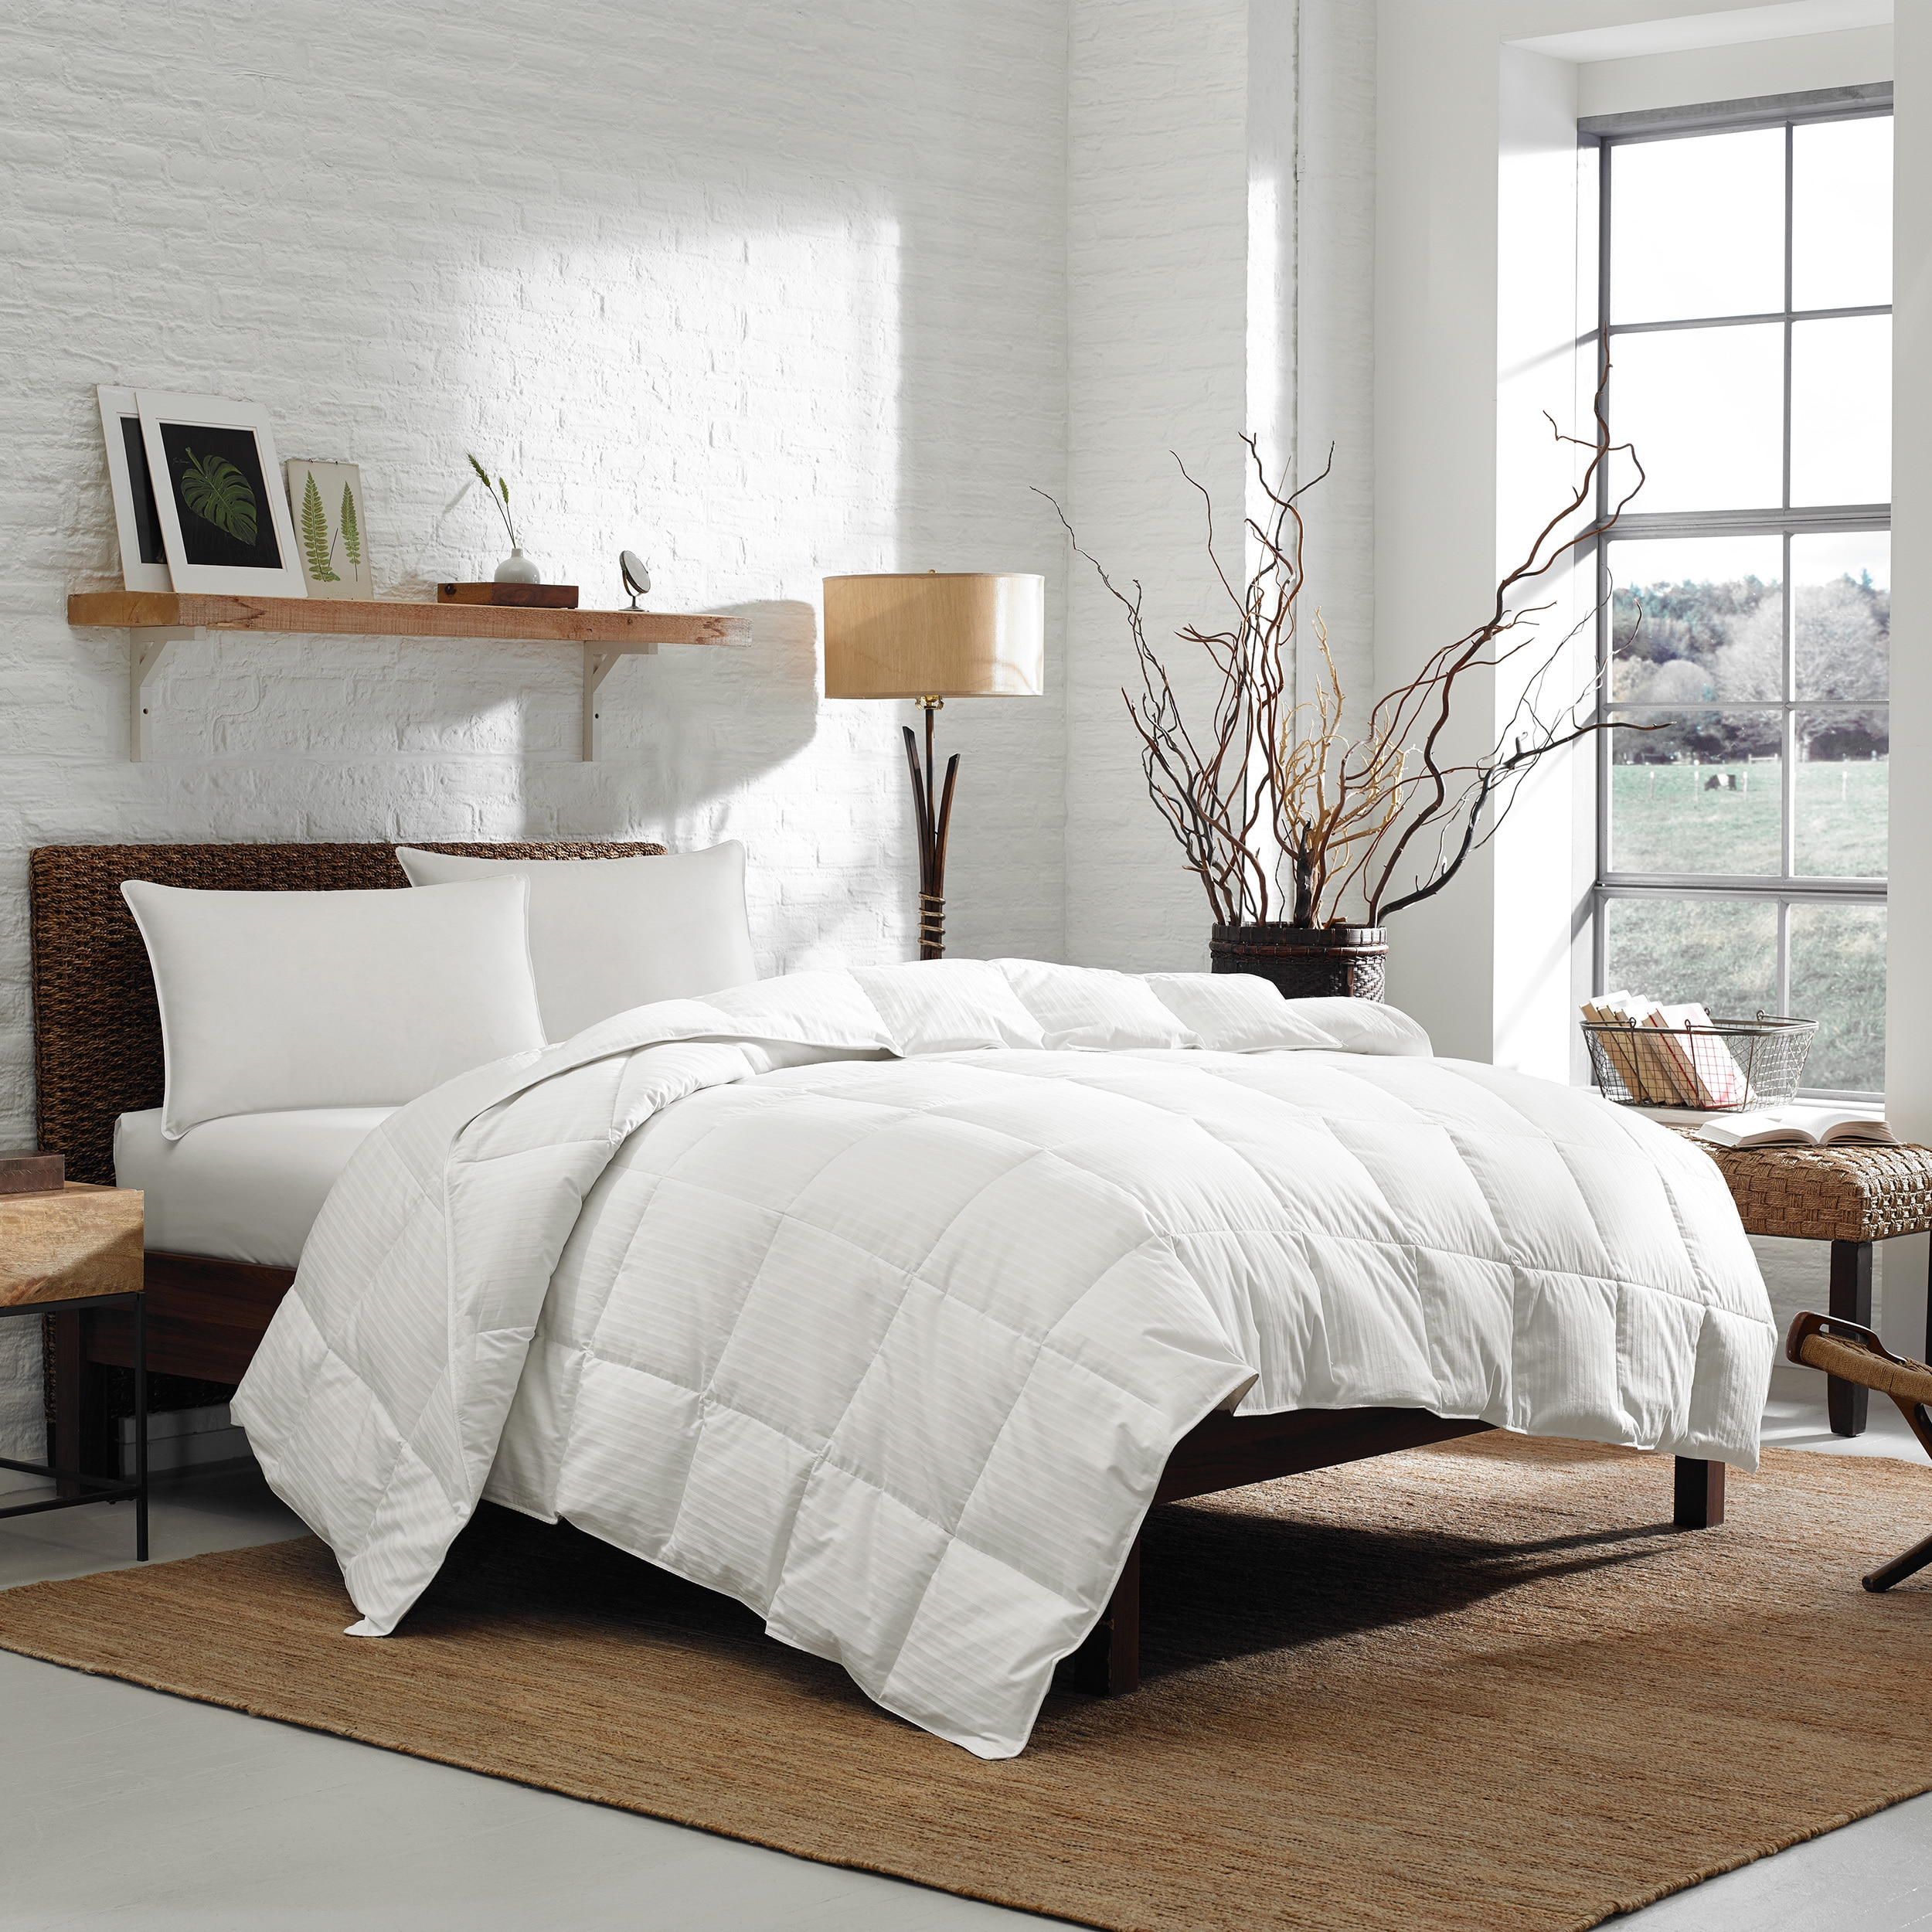 product today bedding fill white eddie bauer damask shipping cotton goose comforter lightweight down oversized overstock free bath comforters power